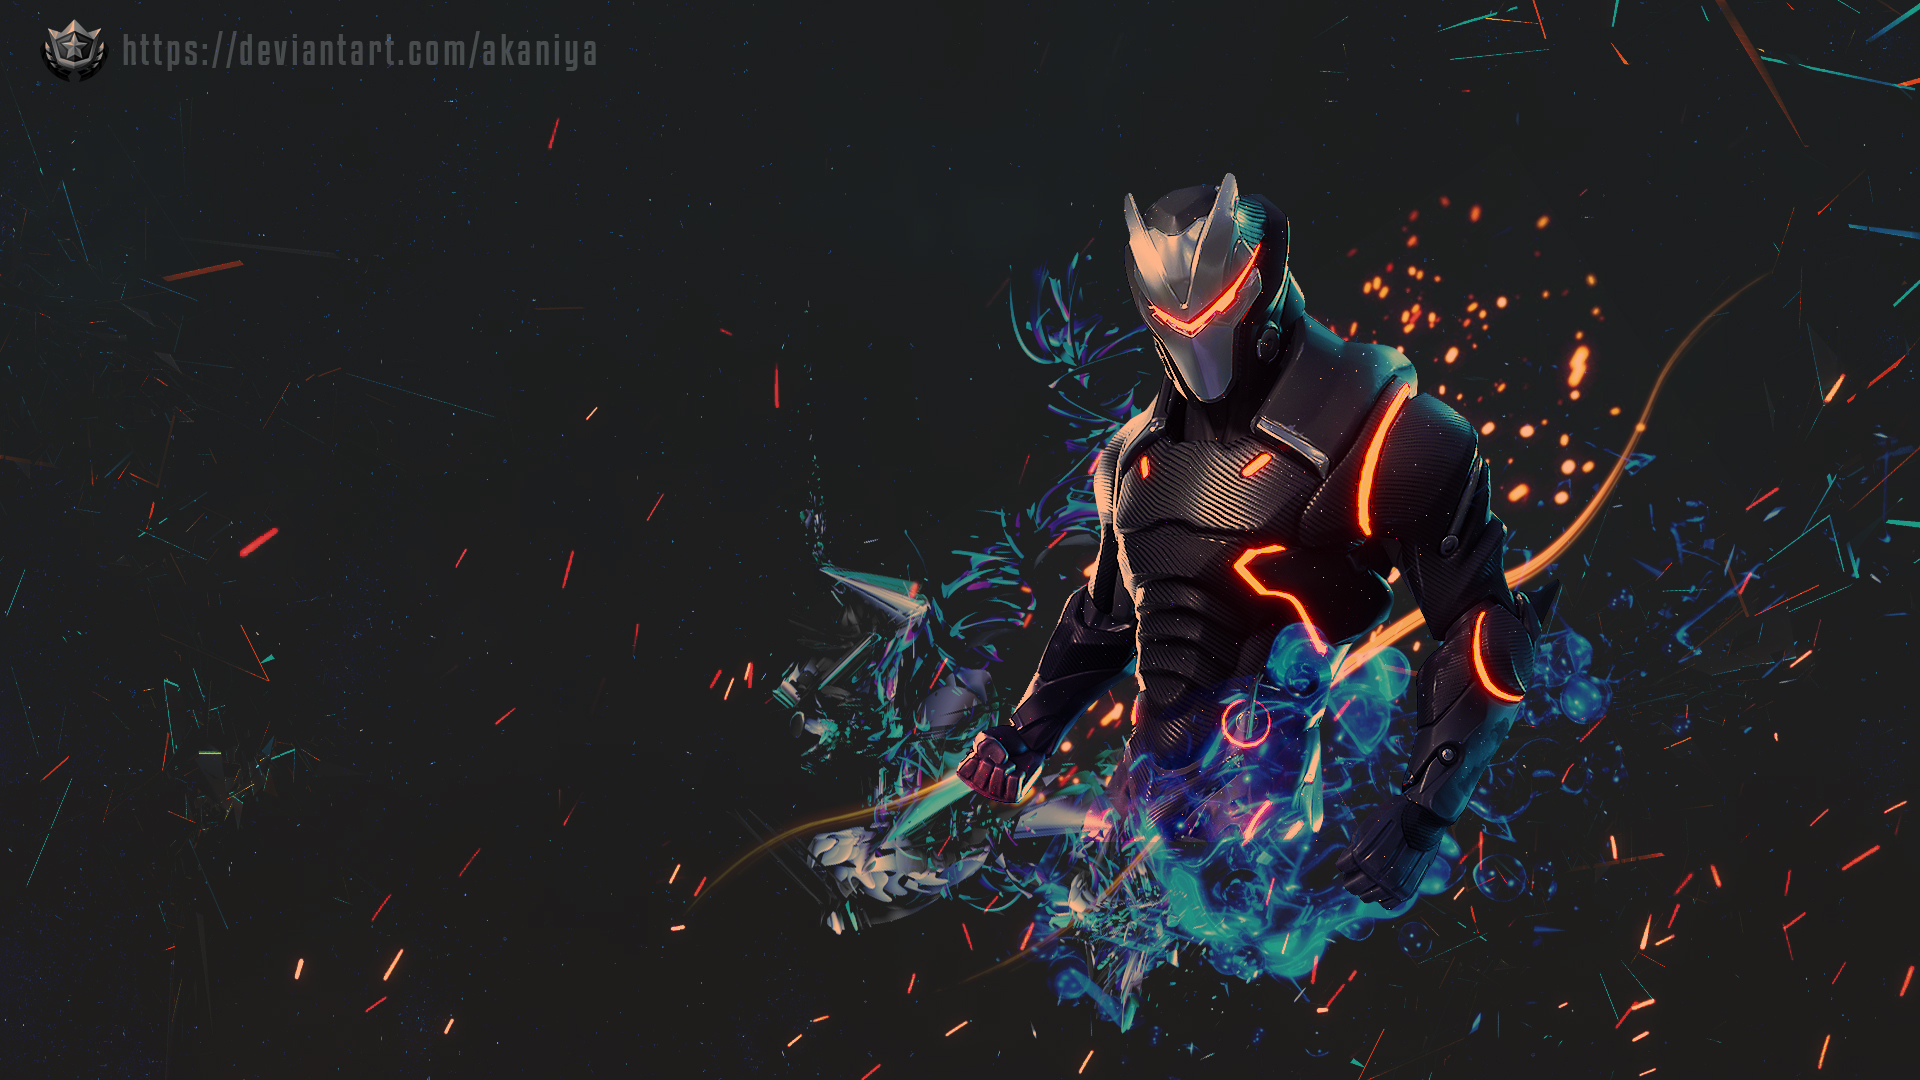 Coolest Fortnite Omega Skin Wallpaper by Akaniya 4261 Wallpapers 1920x1080